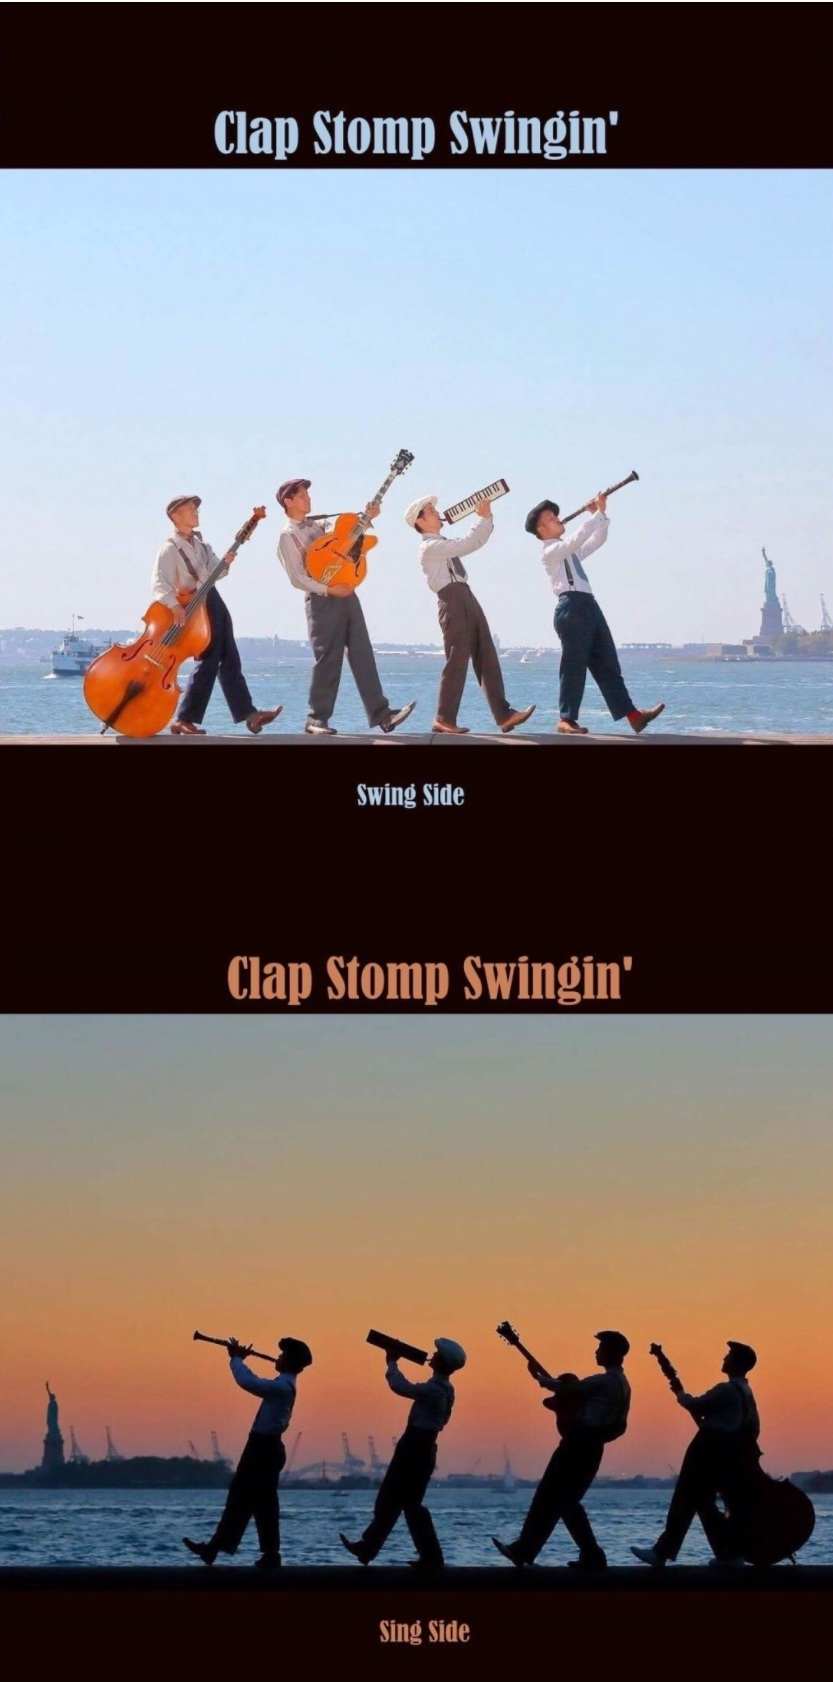 Clap Stomp Swingin' Record Jacket